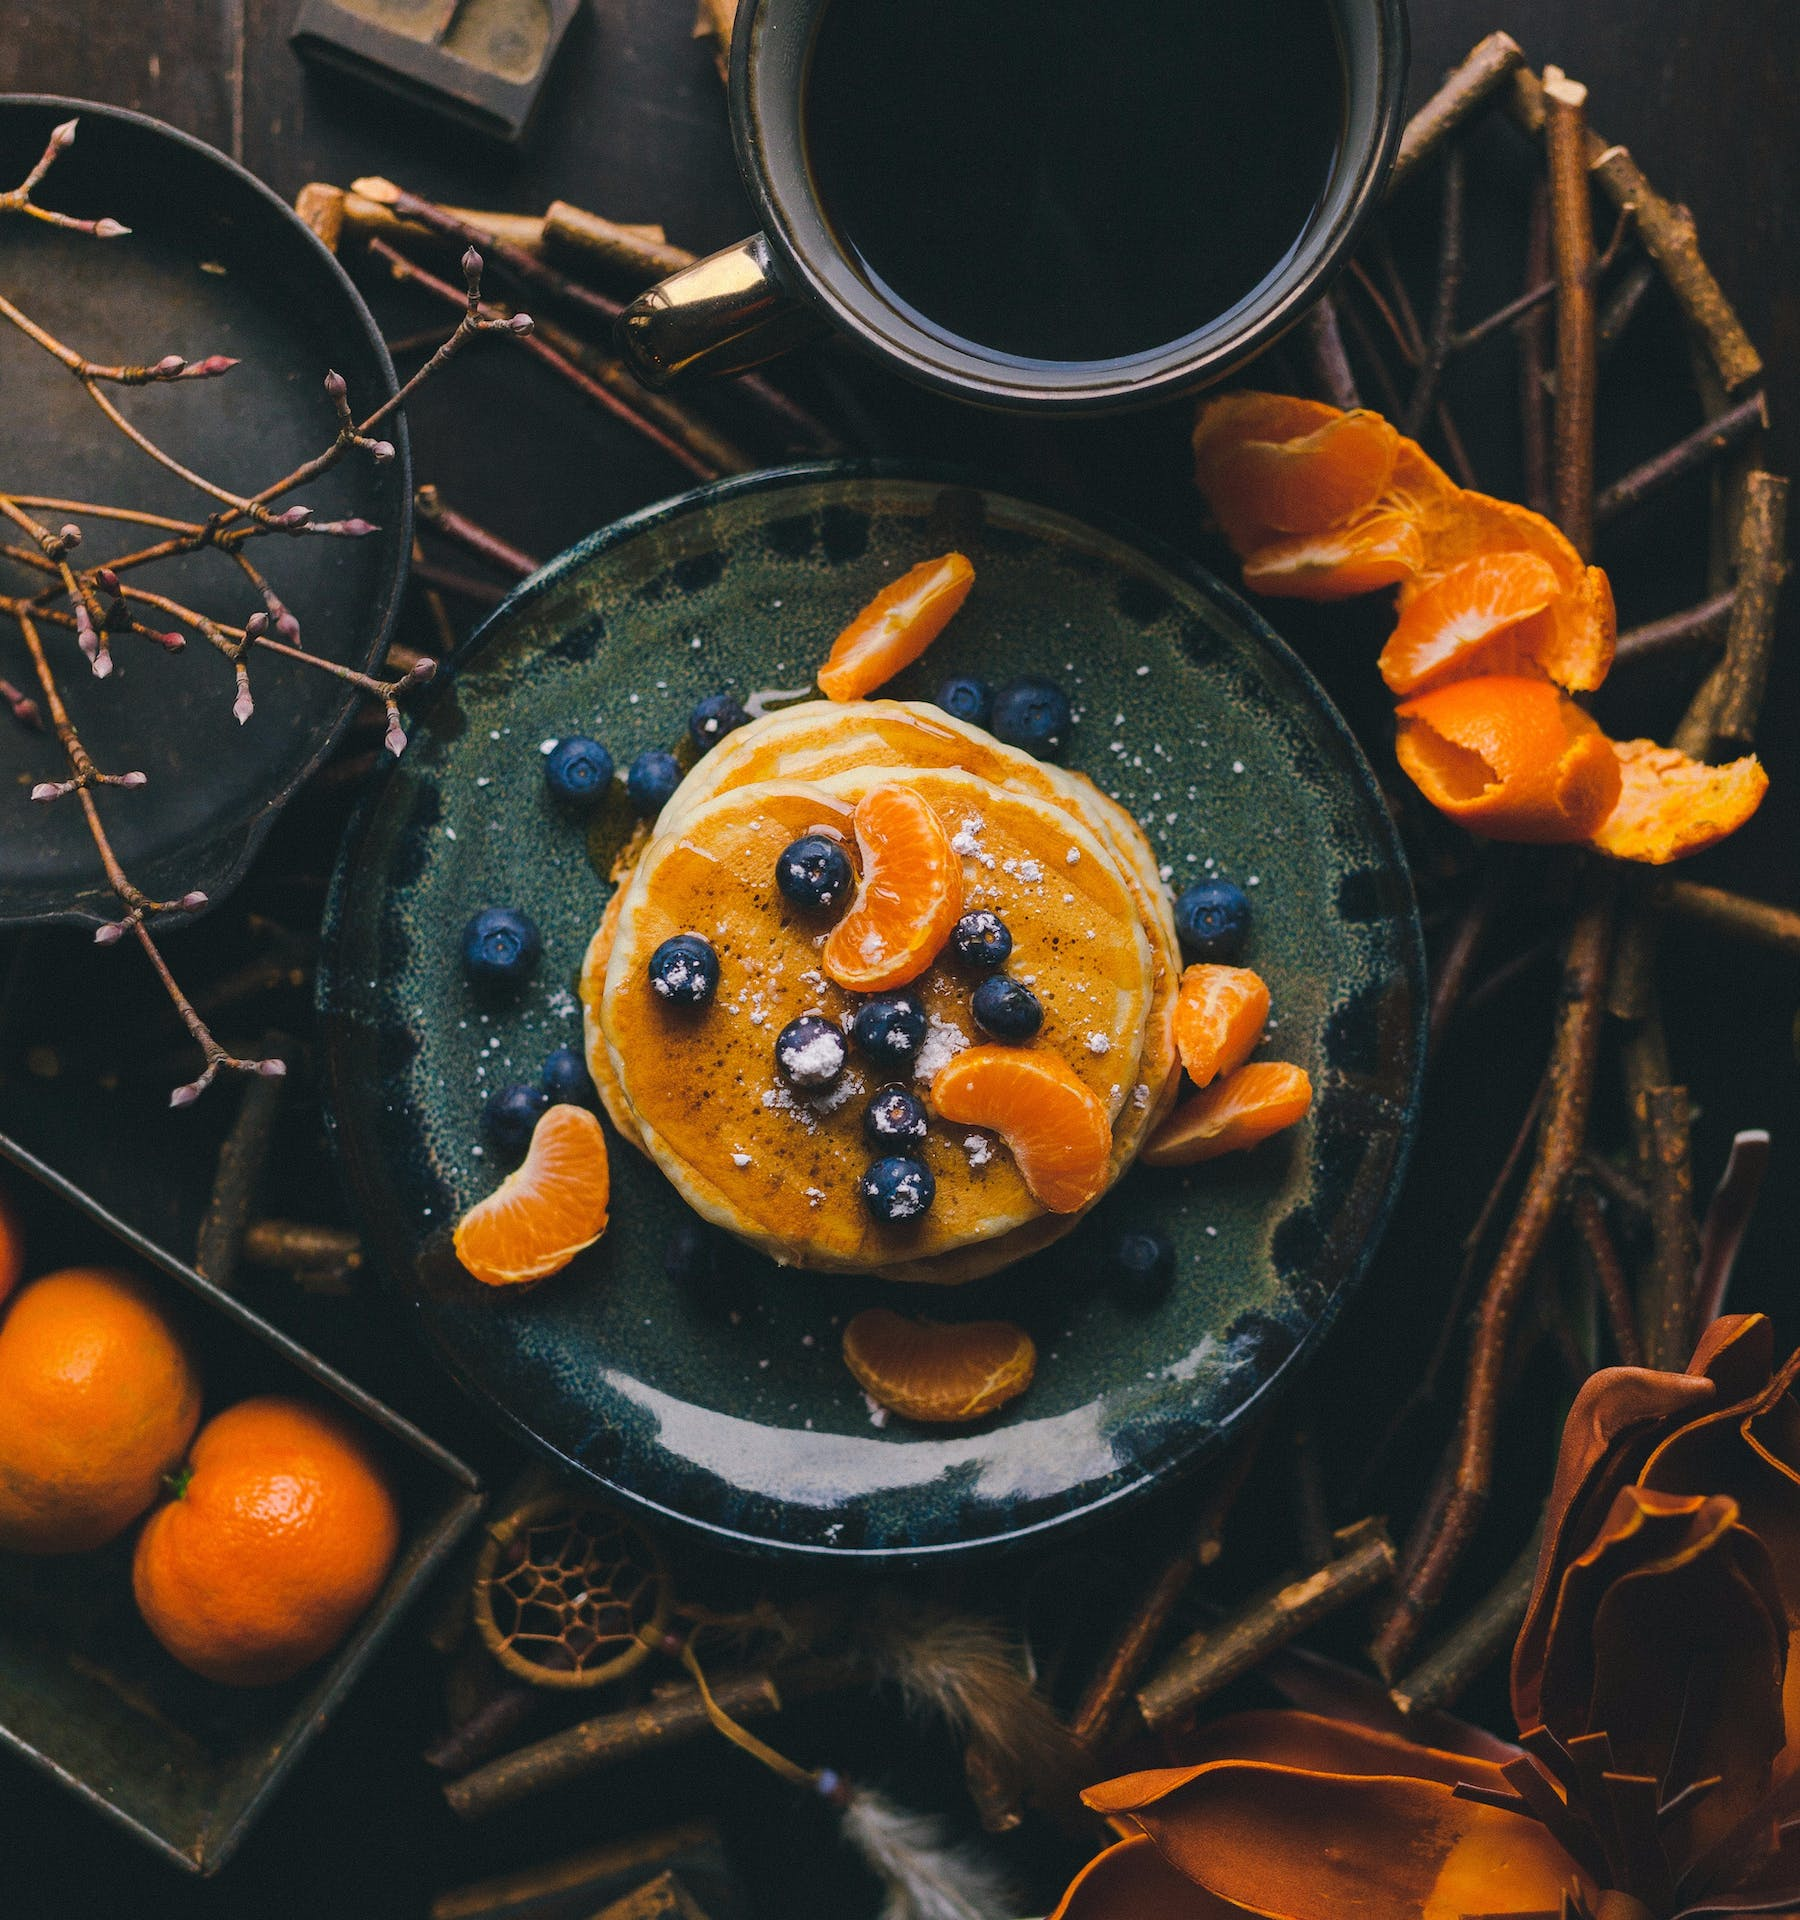 pancakes with blueberries and tangerine